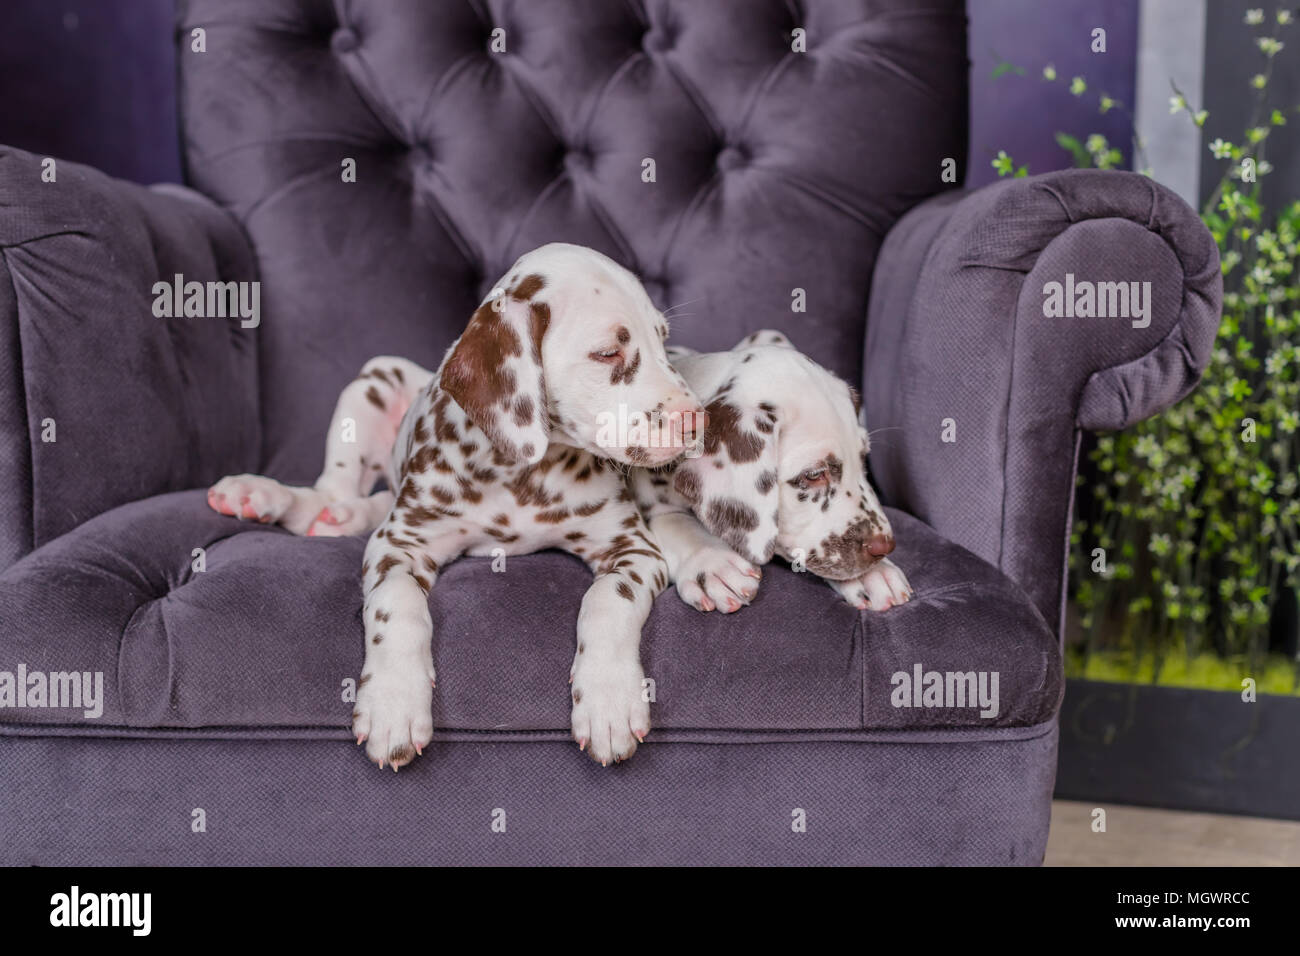 two adorable dalmatian puppies on a chair idoors - Stock Image